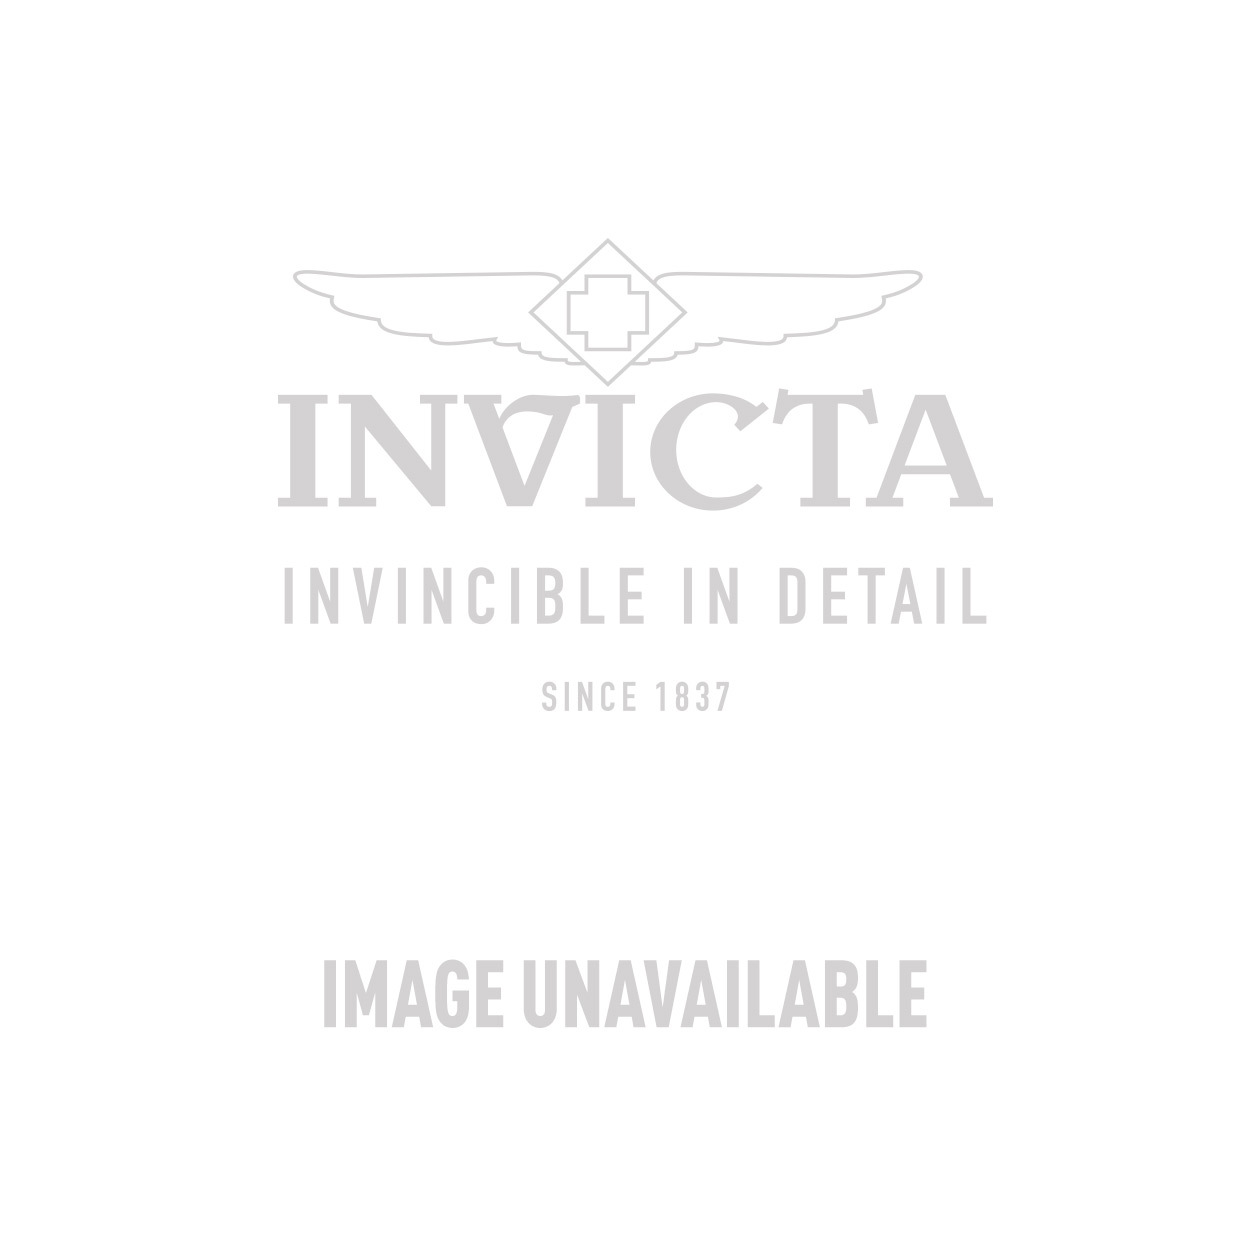 Invicta Reserve Swiss Made Quartz Watch - Stainless Steel case with Black tone Polyurethane band - Model 11169